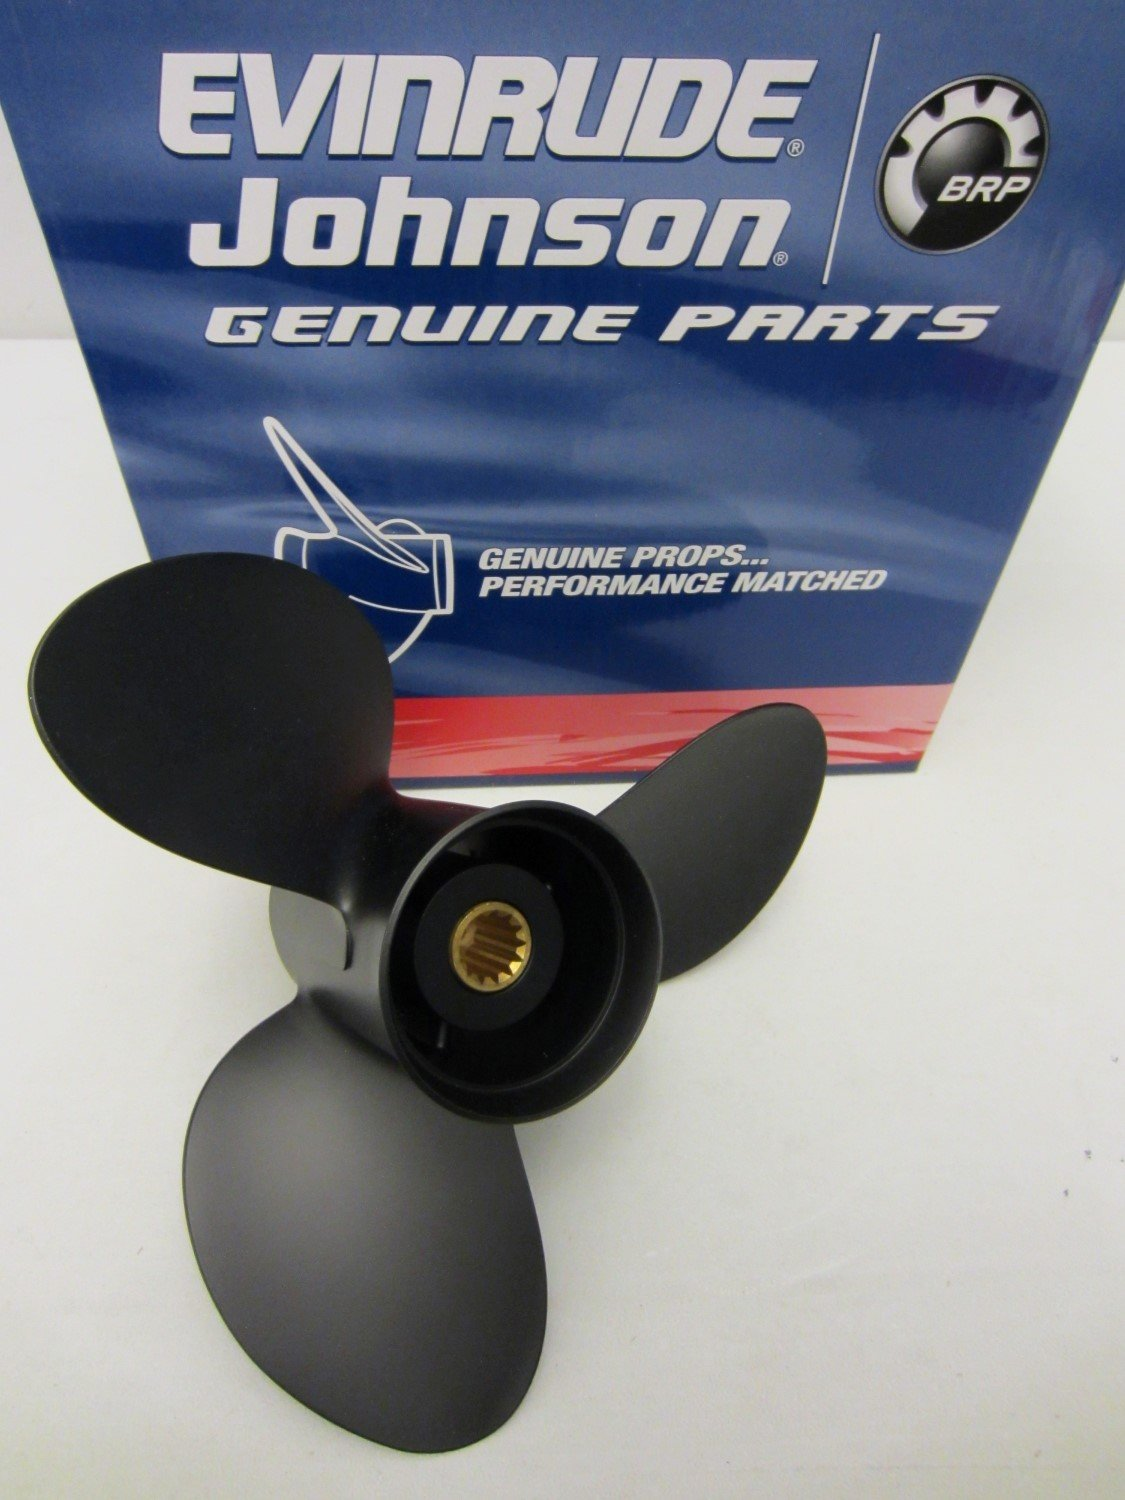 Johnson/Evinrude/OMC OEM Propeller 12.25x15 Prop 778774; 0778774 12-1/4 x 15 Pitch by Evinrude